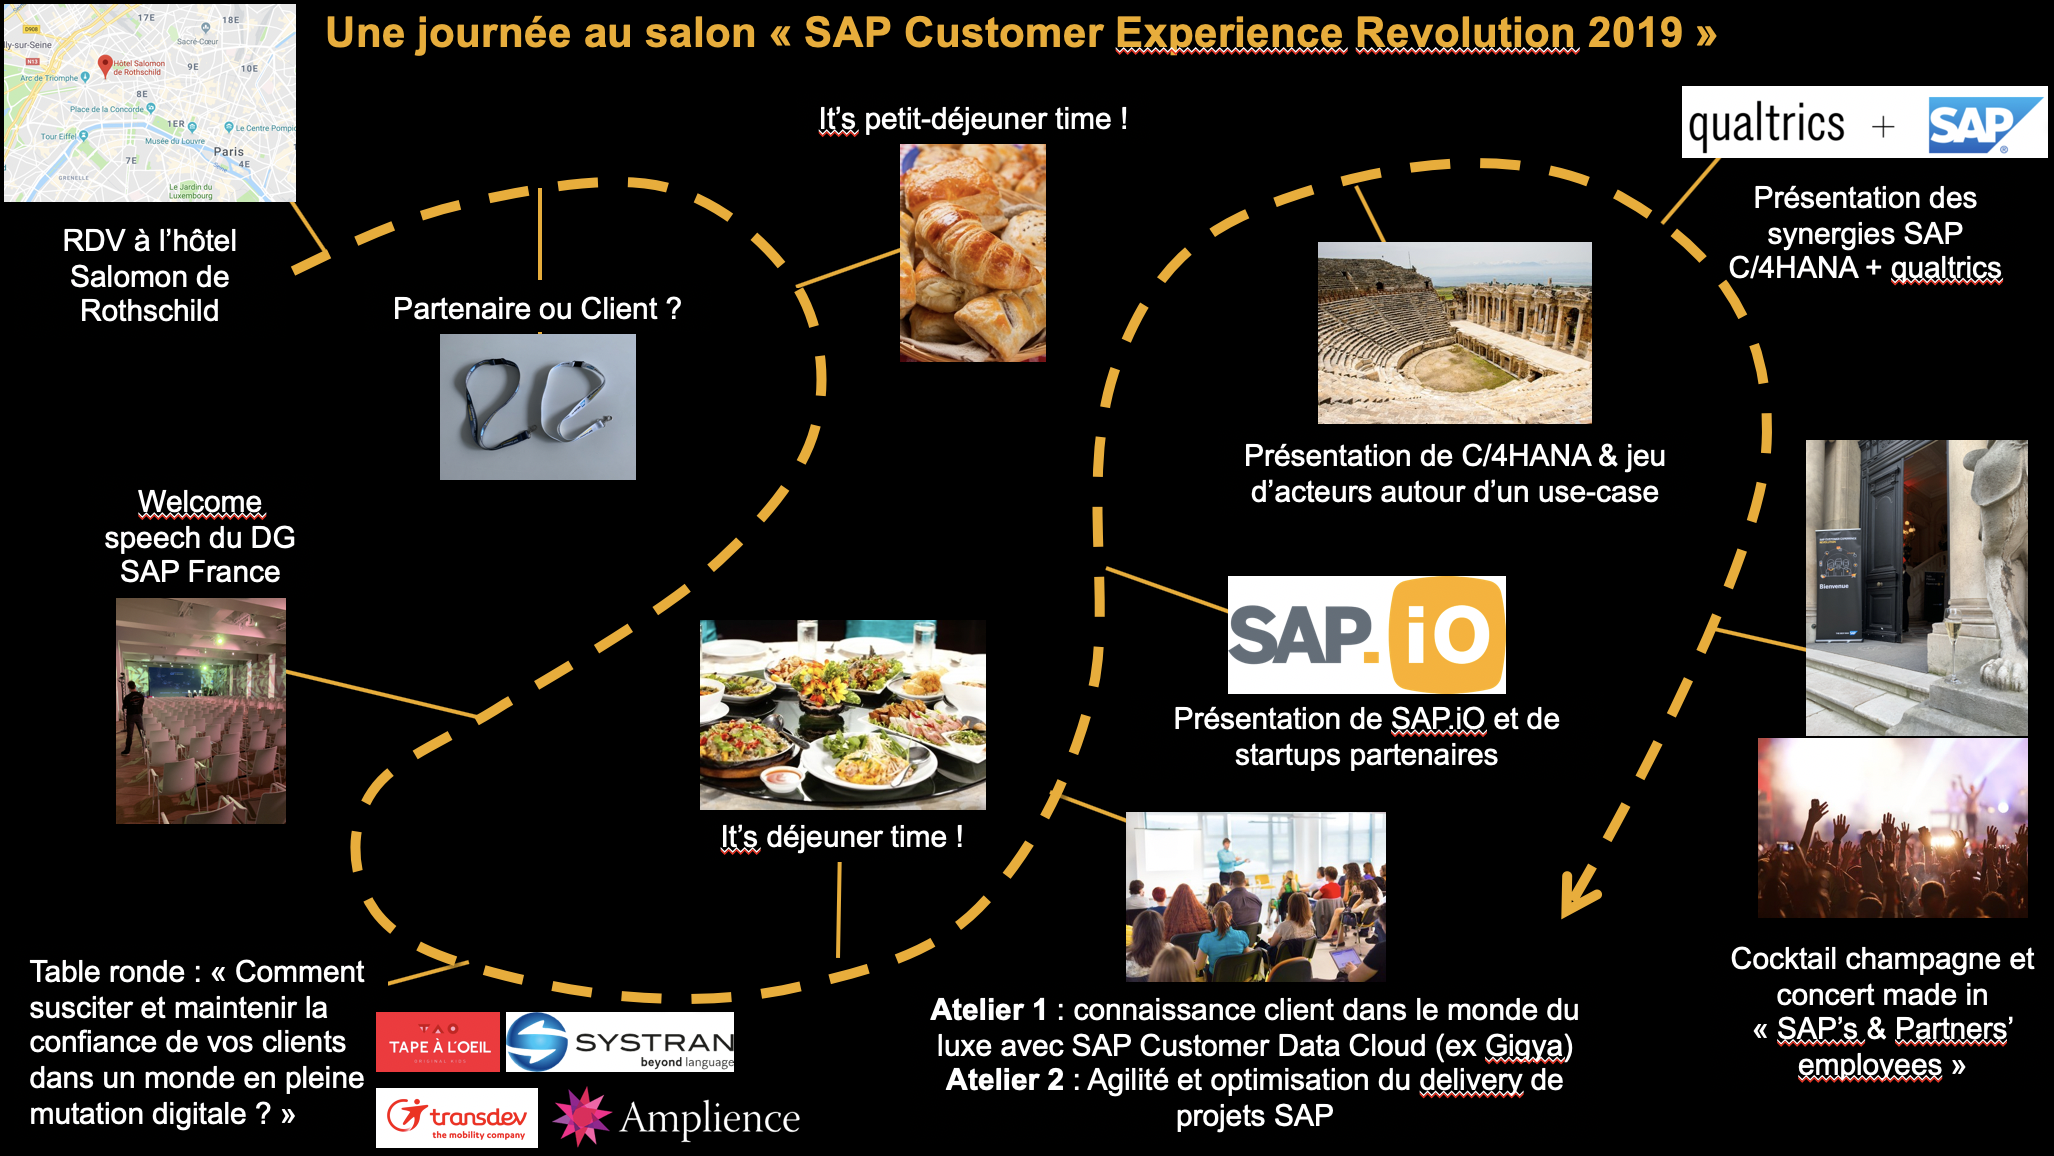 SAP Customer Experience Revolution 2019